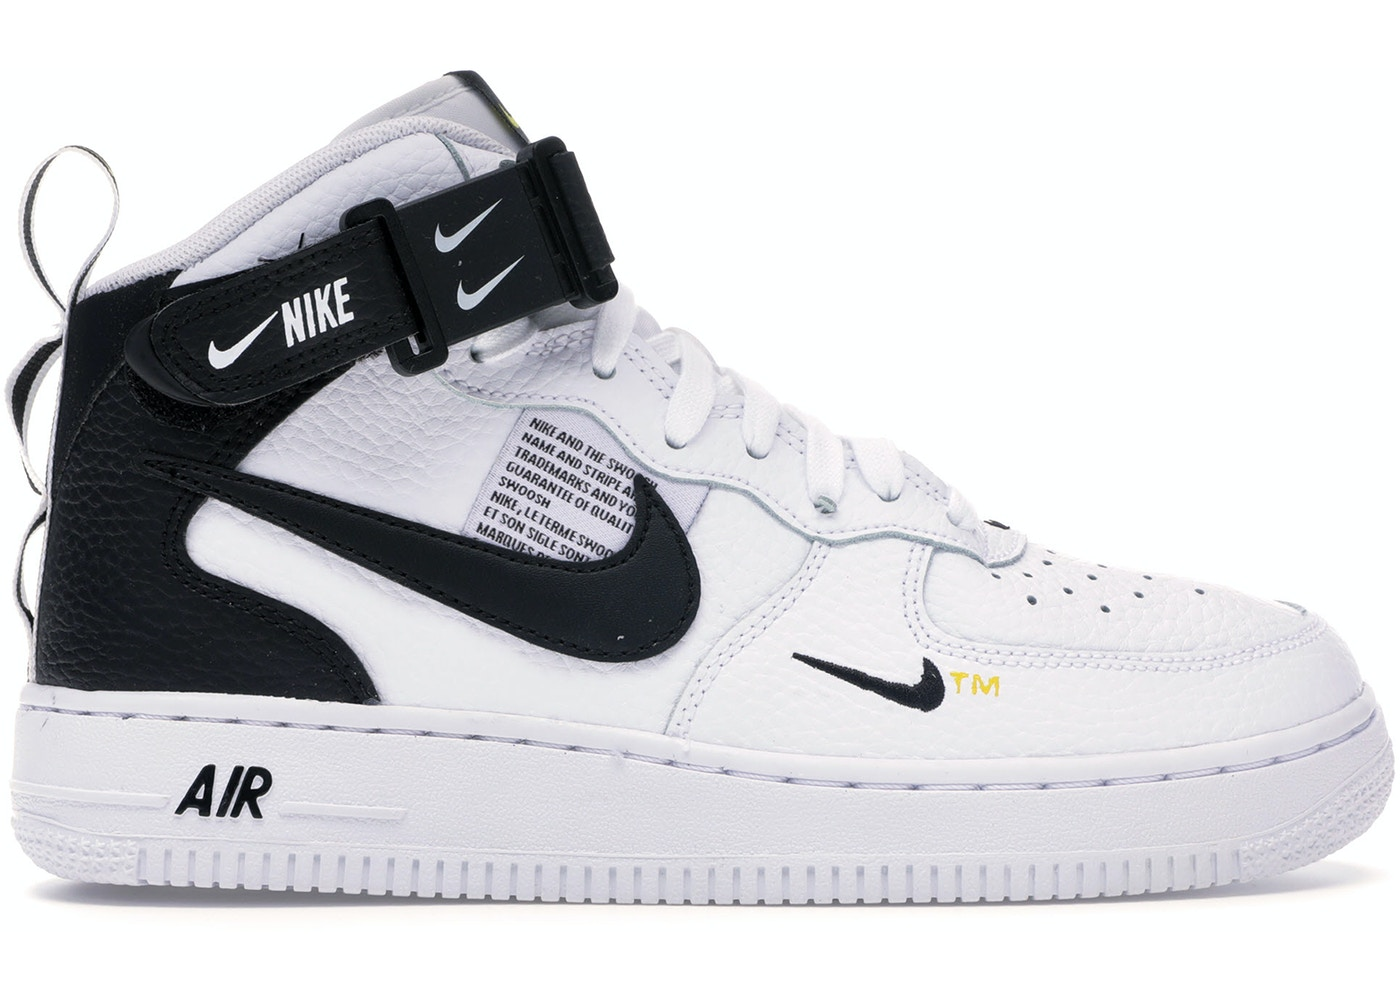 low priced 26c4c af965 Air Force 1 Mid Utility White Black (GS)